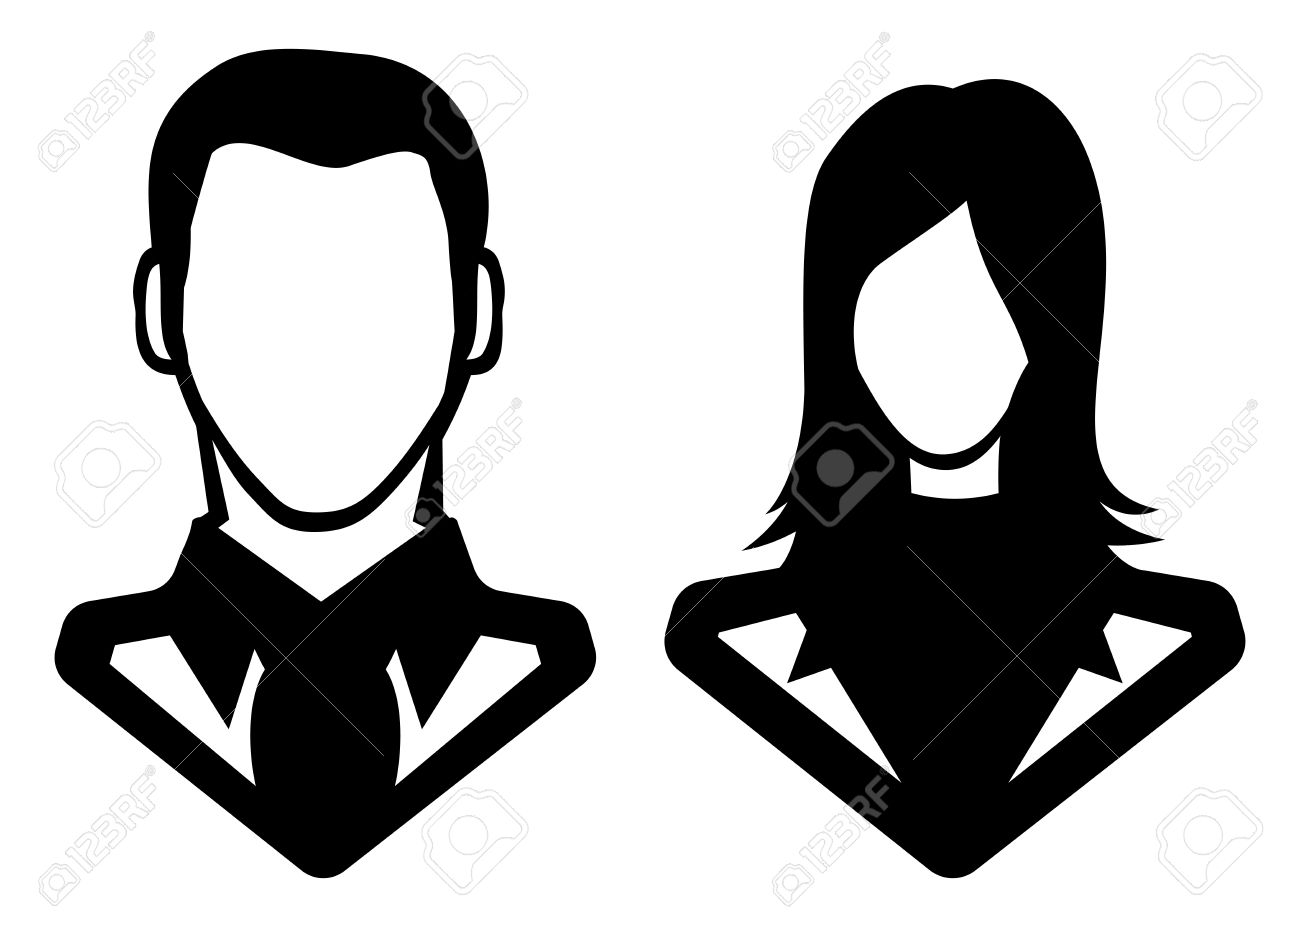 Man And Woman Icon - Avatar Royalty Free Cliparts, Vectors, And ...